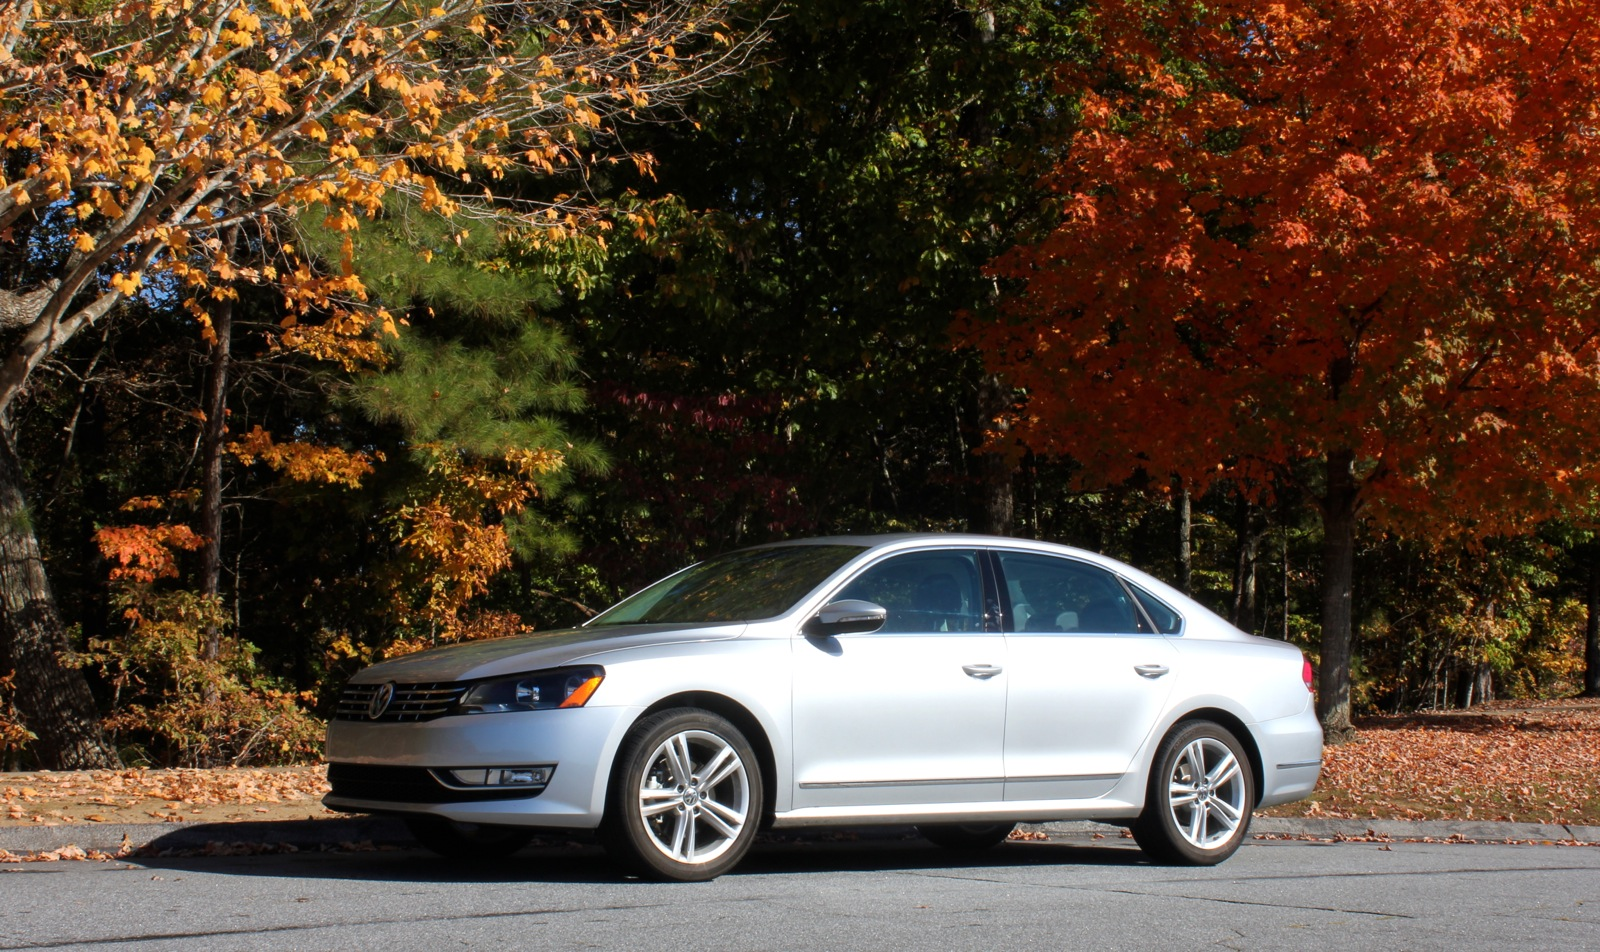 2012 2014 vw passat tdi diesels approved for modification by epa. Black Bedroom Furniture Sets. Home Design Ideas